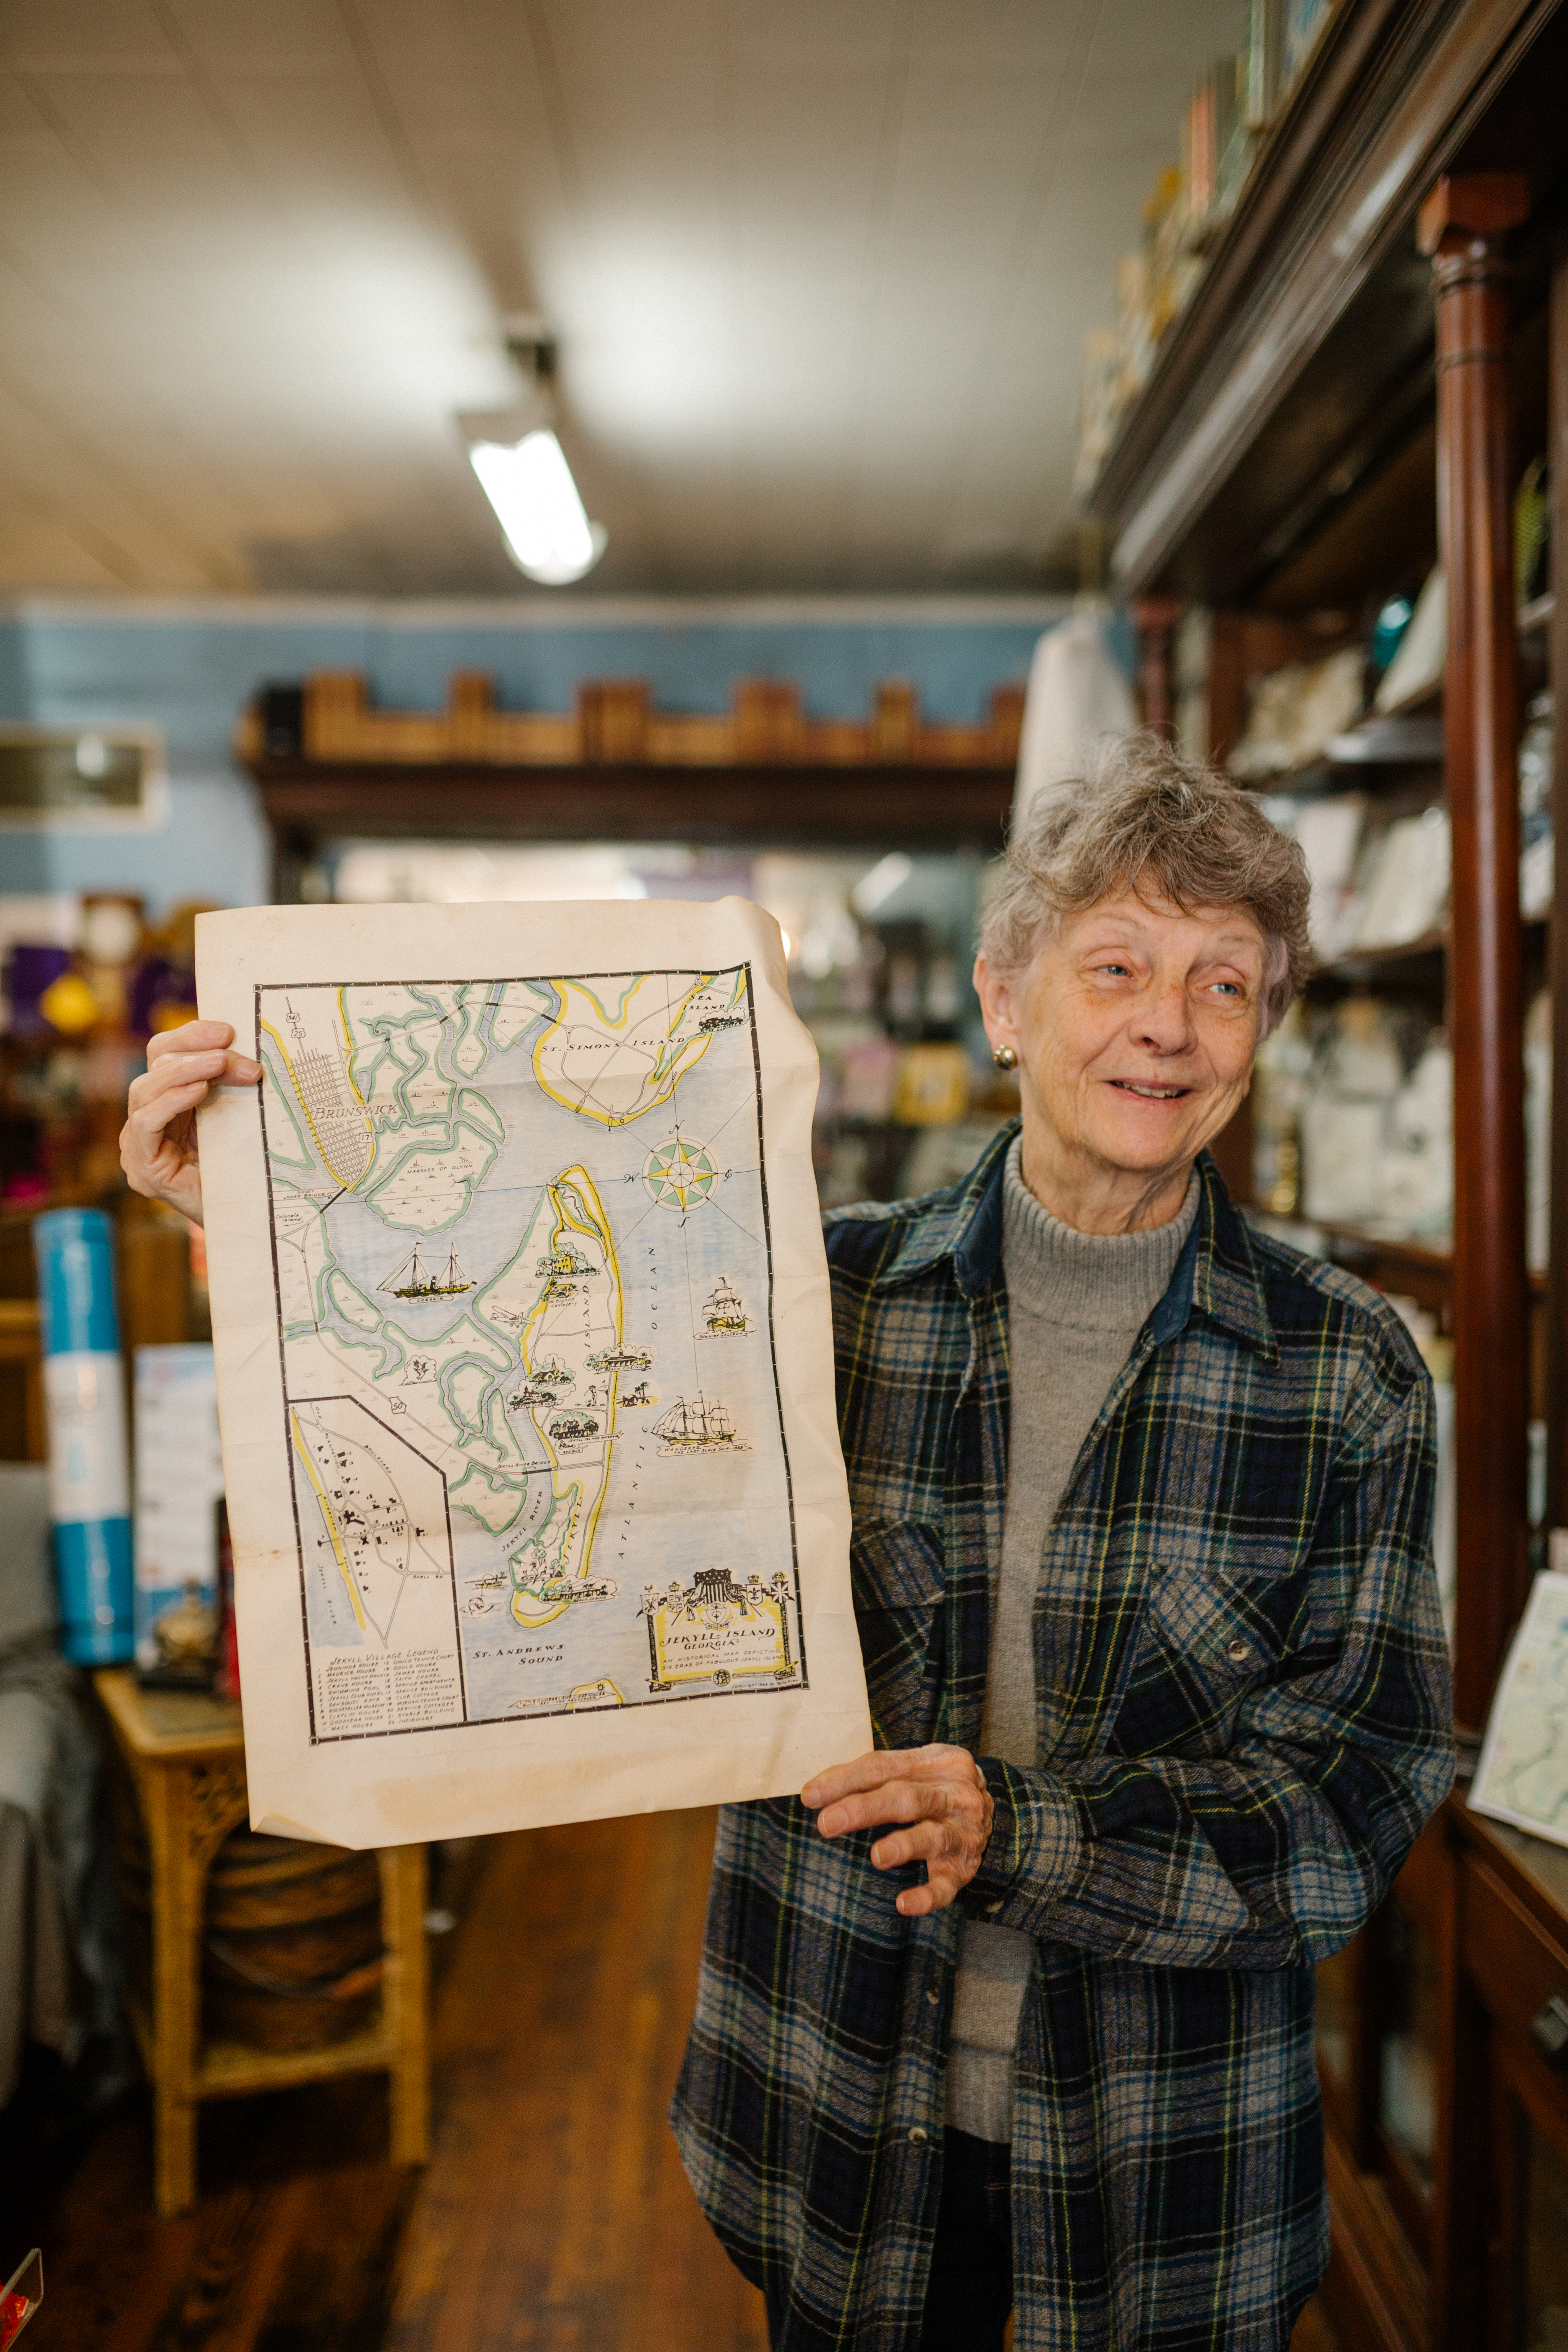 Shop keeper of Horton's Bookstore holding a map.